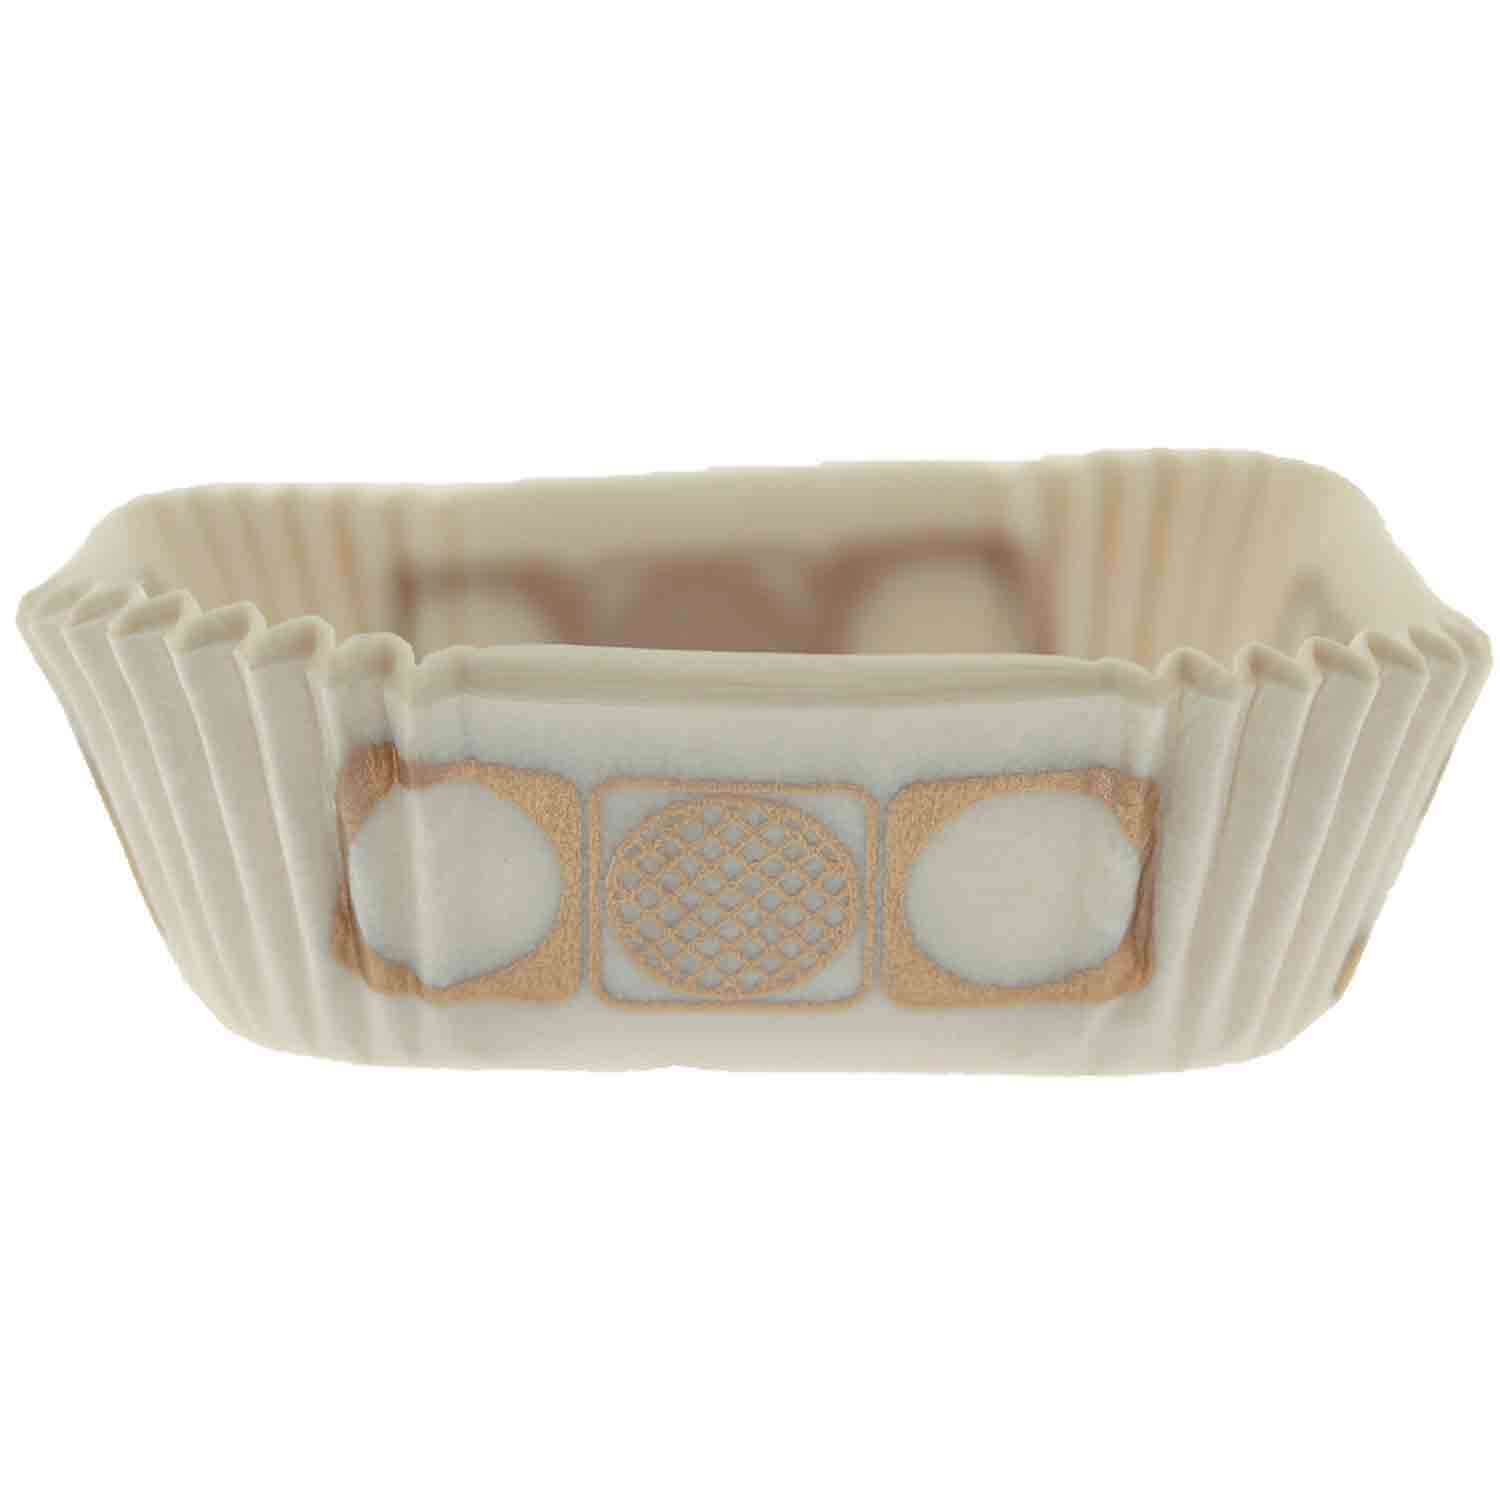 "White and Gold 2"" Square Candy Cups"